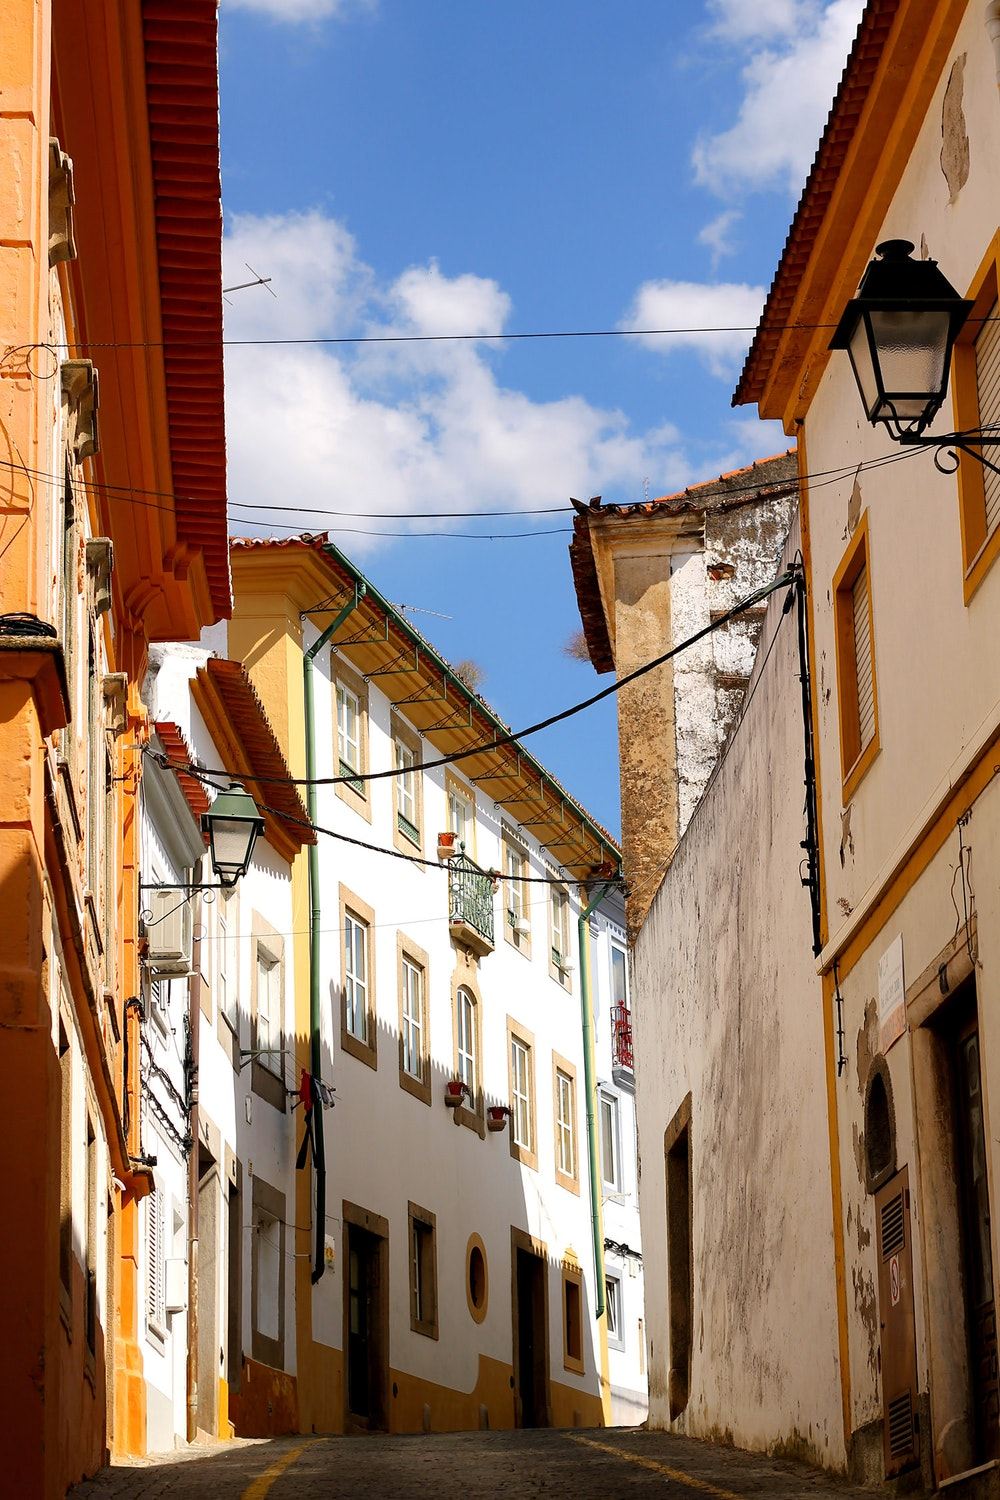 Sunny streets with white and yellow homes in Portalegre